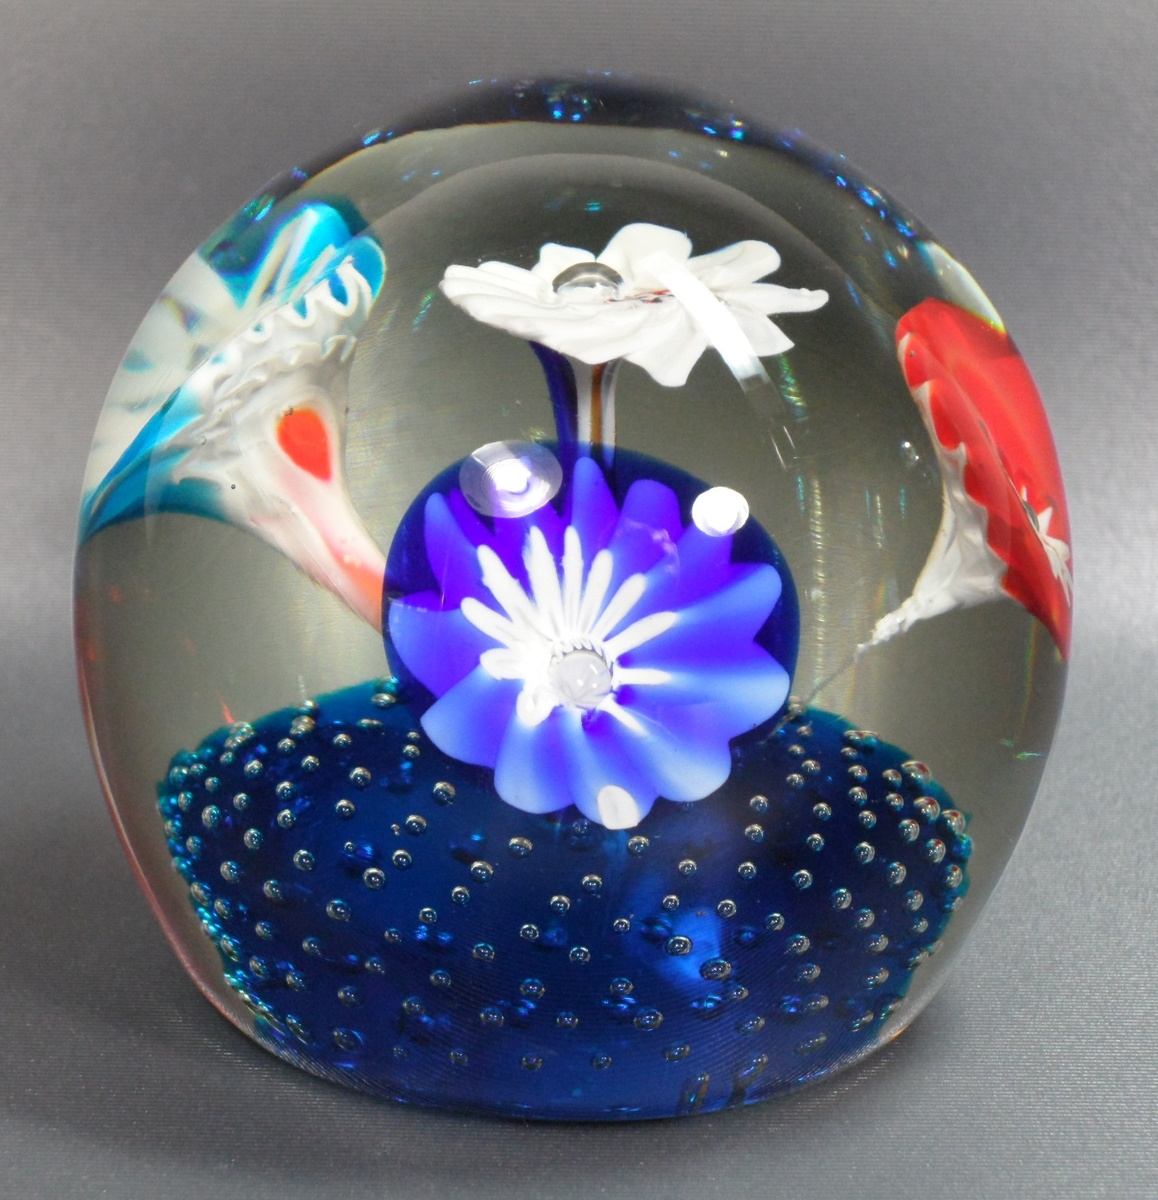 Fratelli toso trumpet flower paperweight collectors weekly 18 mightylinksfo